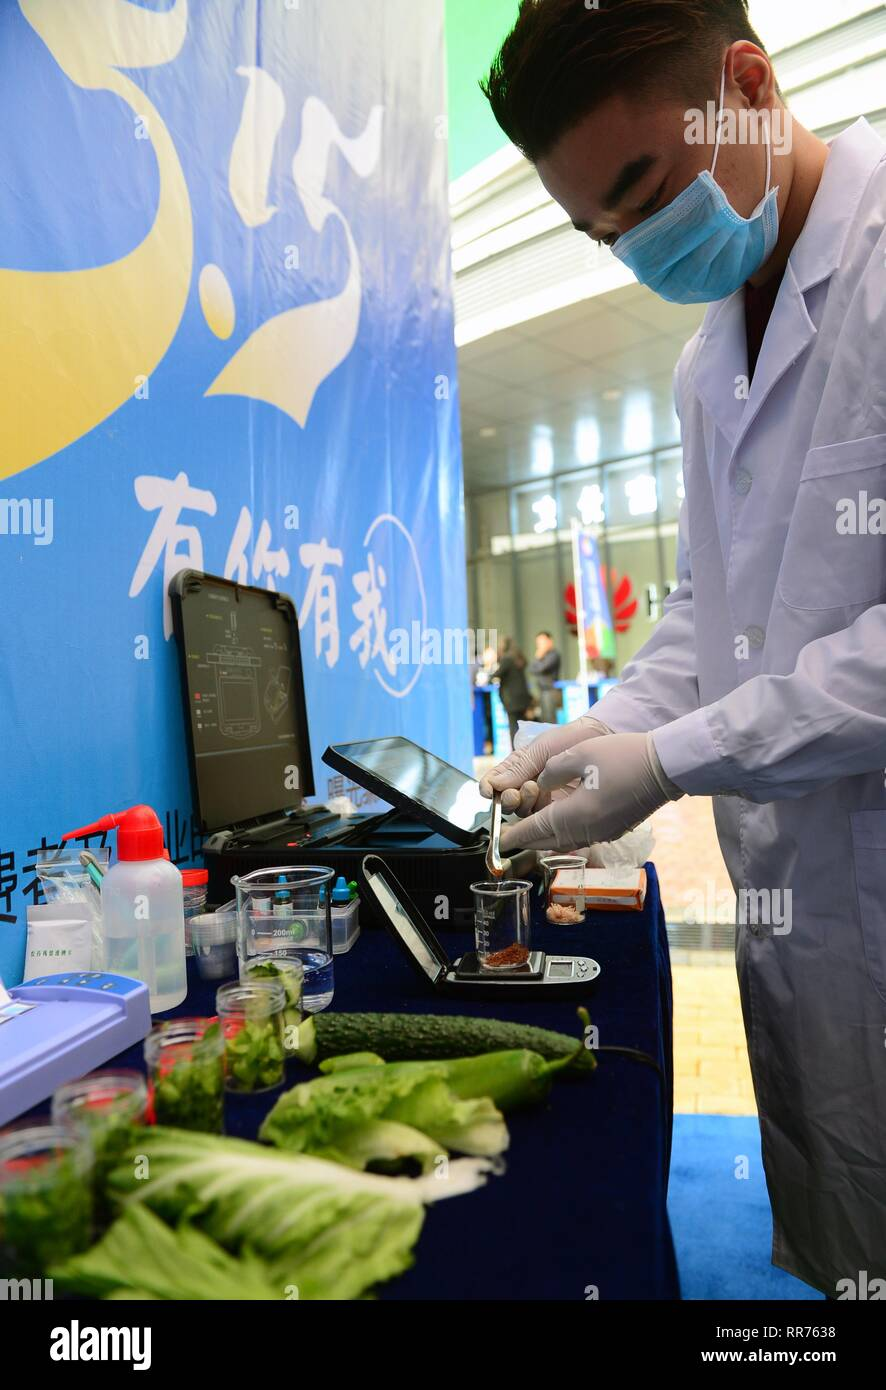 (190225) -- BEIJING, Feb. 25, 2019 (Xinhua) -- A technician checks the content of sulfur dioxide in food during an activity in Nanning, capital of south China's Guangxi Zhuang Autonomous Region, March 15, 2017, the International Consumer Rights Day. China has unveiled a guideline to enhance the accountability system of local governments to strengthen supervision over food safety. Food safety will be included in the performance assessment of the Party and government leading officials, according to the guideline released by the Central Committee of the Communist Party of China (CPC) and the S - Stock Image